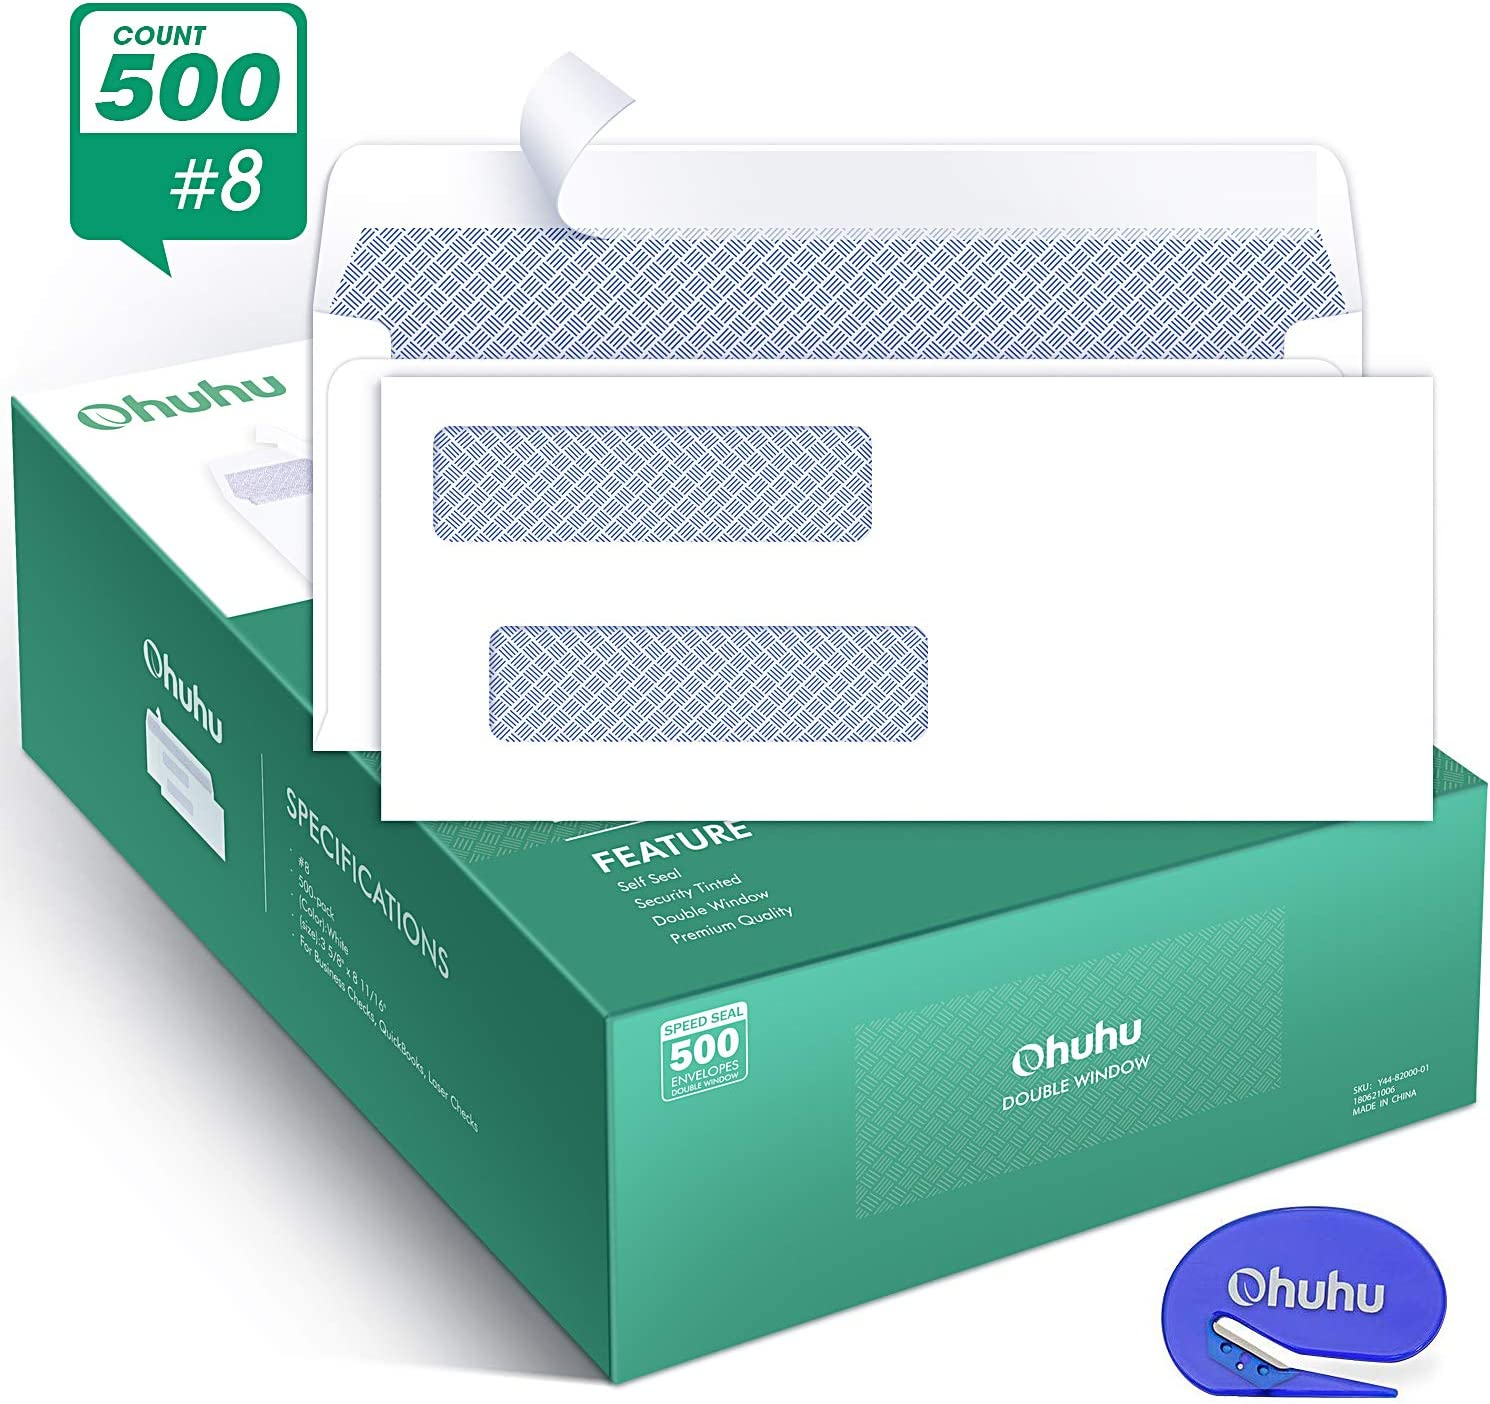 Ohuhu 500 Pack # 8 Double Window Envelope SELF SEAL Adhesive Tinted Security Envelopes Quickbooks Check, Business Check, Documents Secure Mailing, 3 5/8 x 8 11/16 Inches, A Letter Opener Included